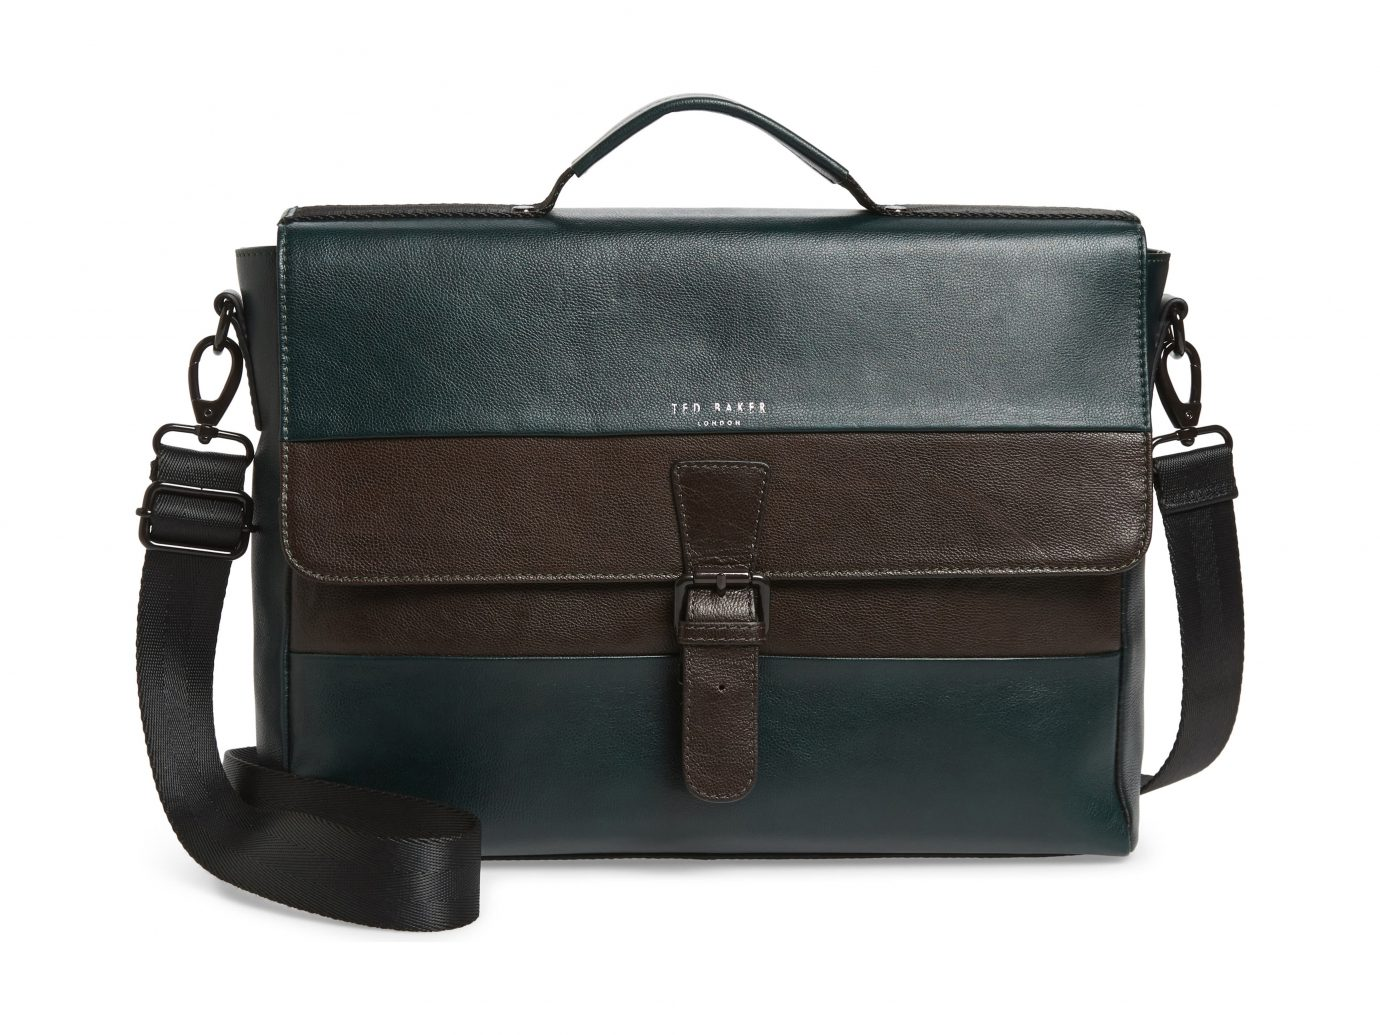 Briefcase, Main, color, DARK GREEN Leather Briefcase TED BAKER LONDON